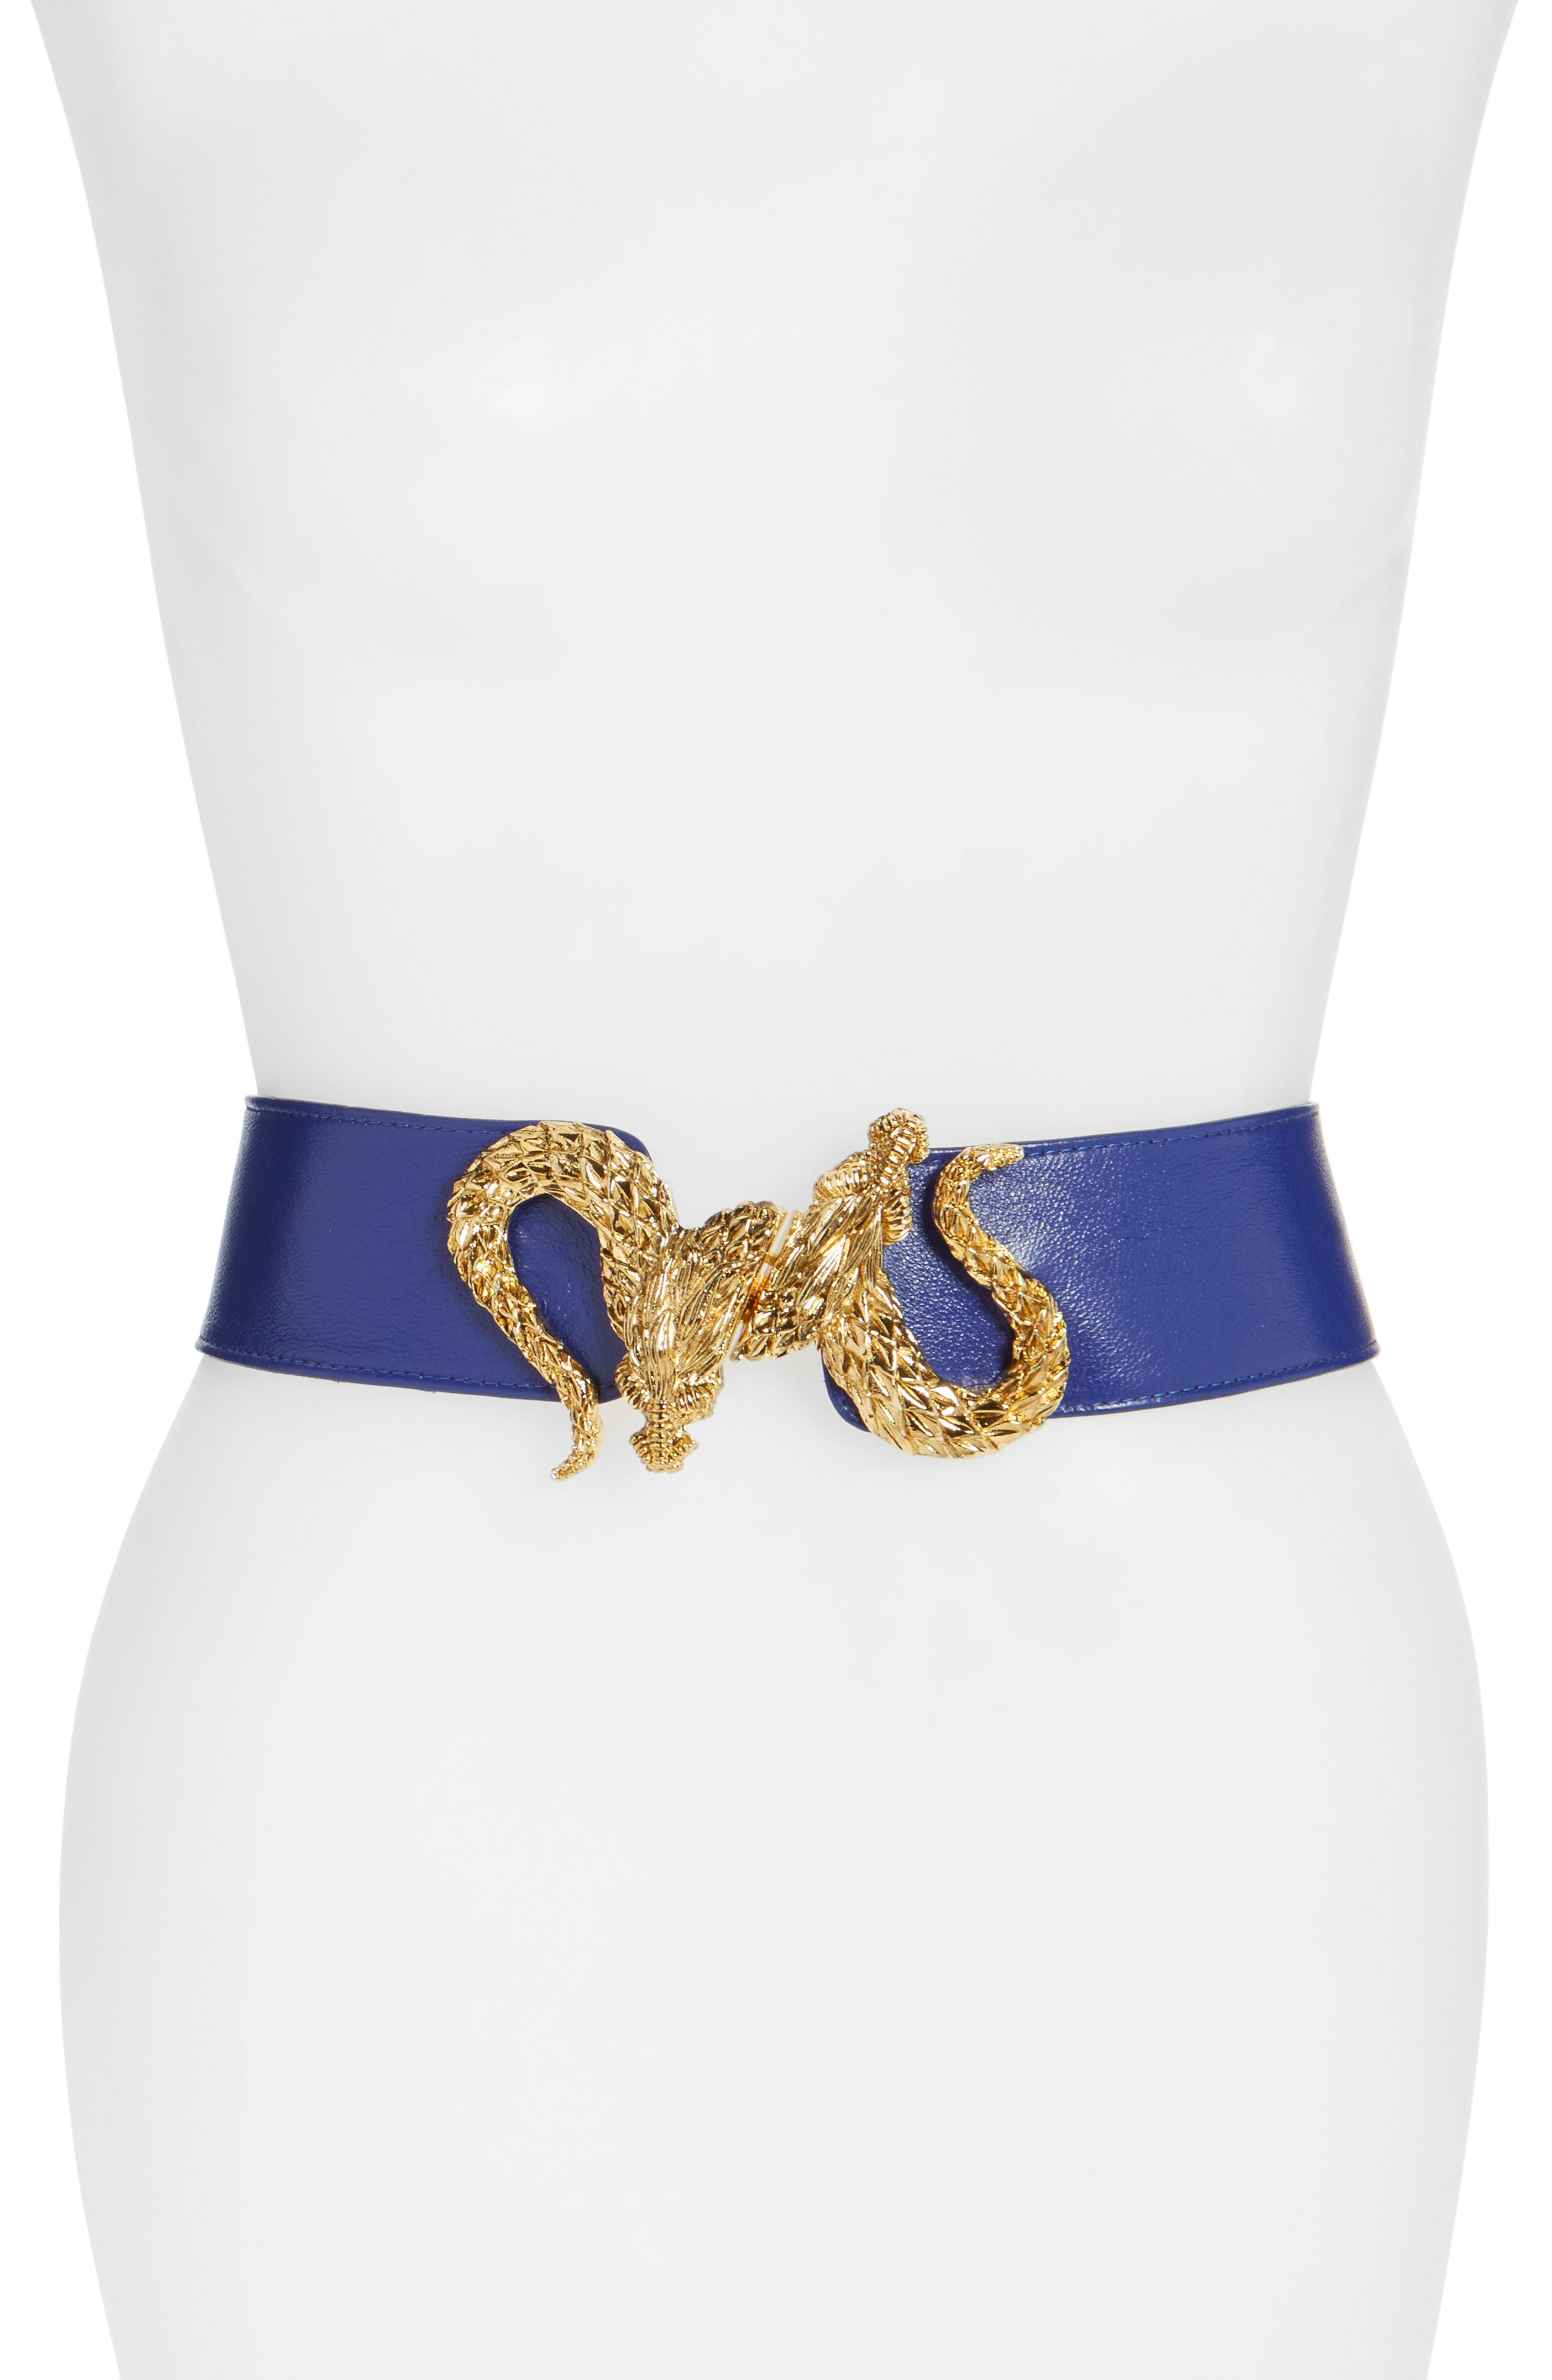 'Penelope - Dragon' Stretch Belt,                         Main,                         color, Blue